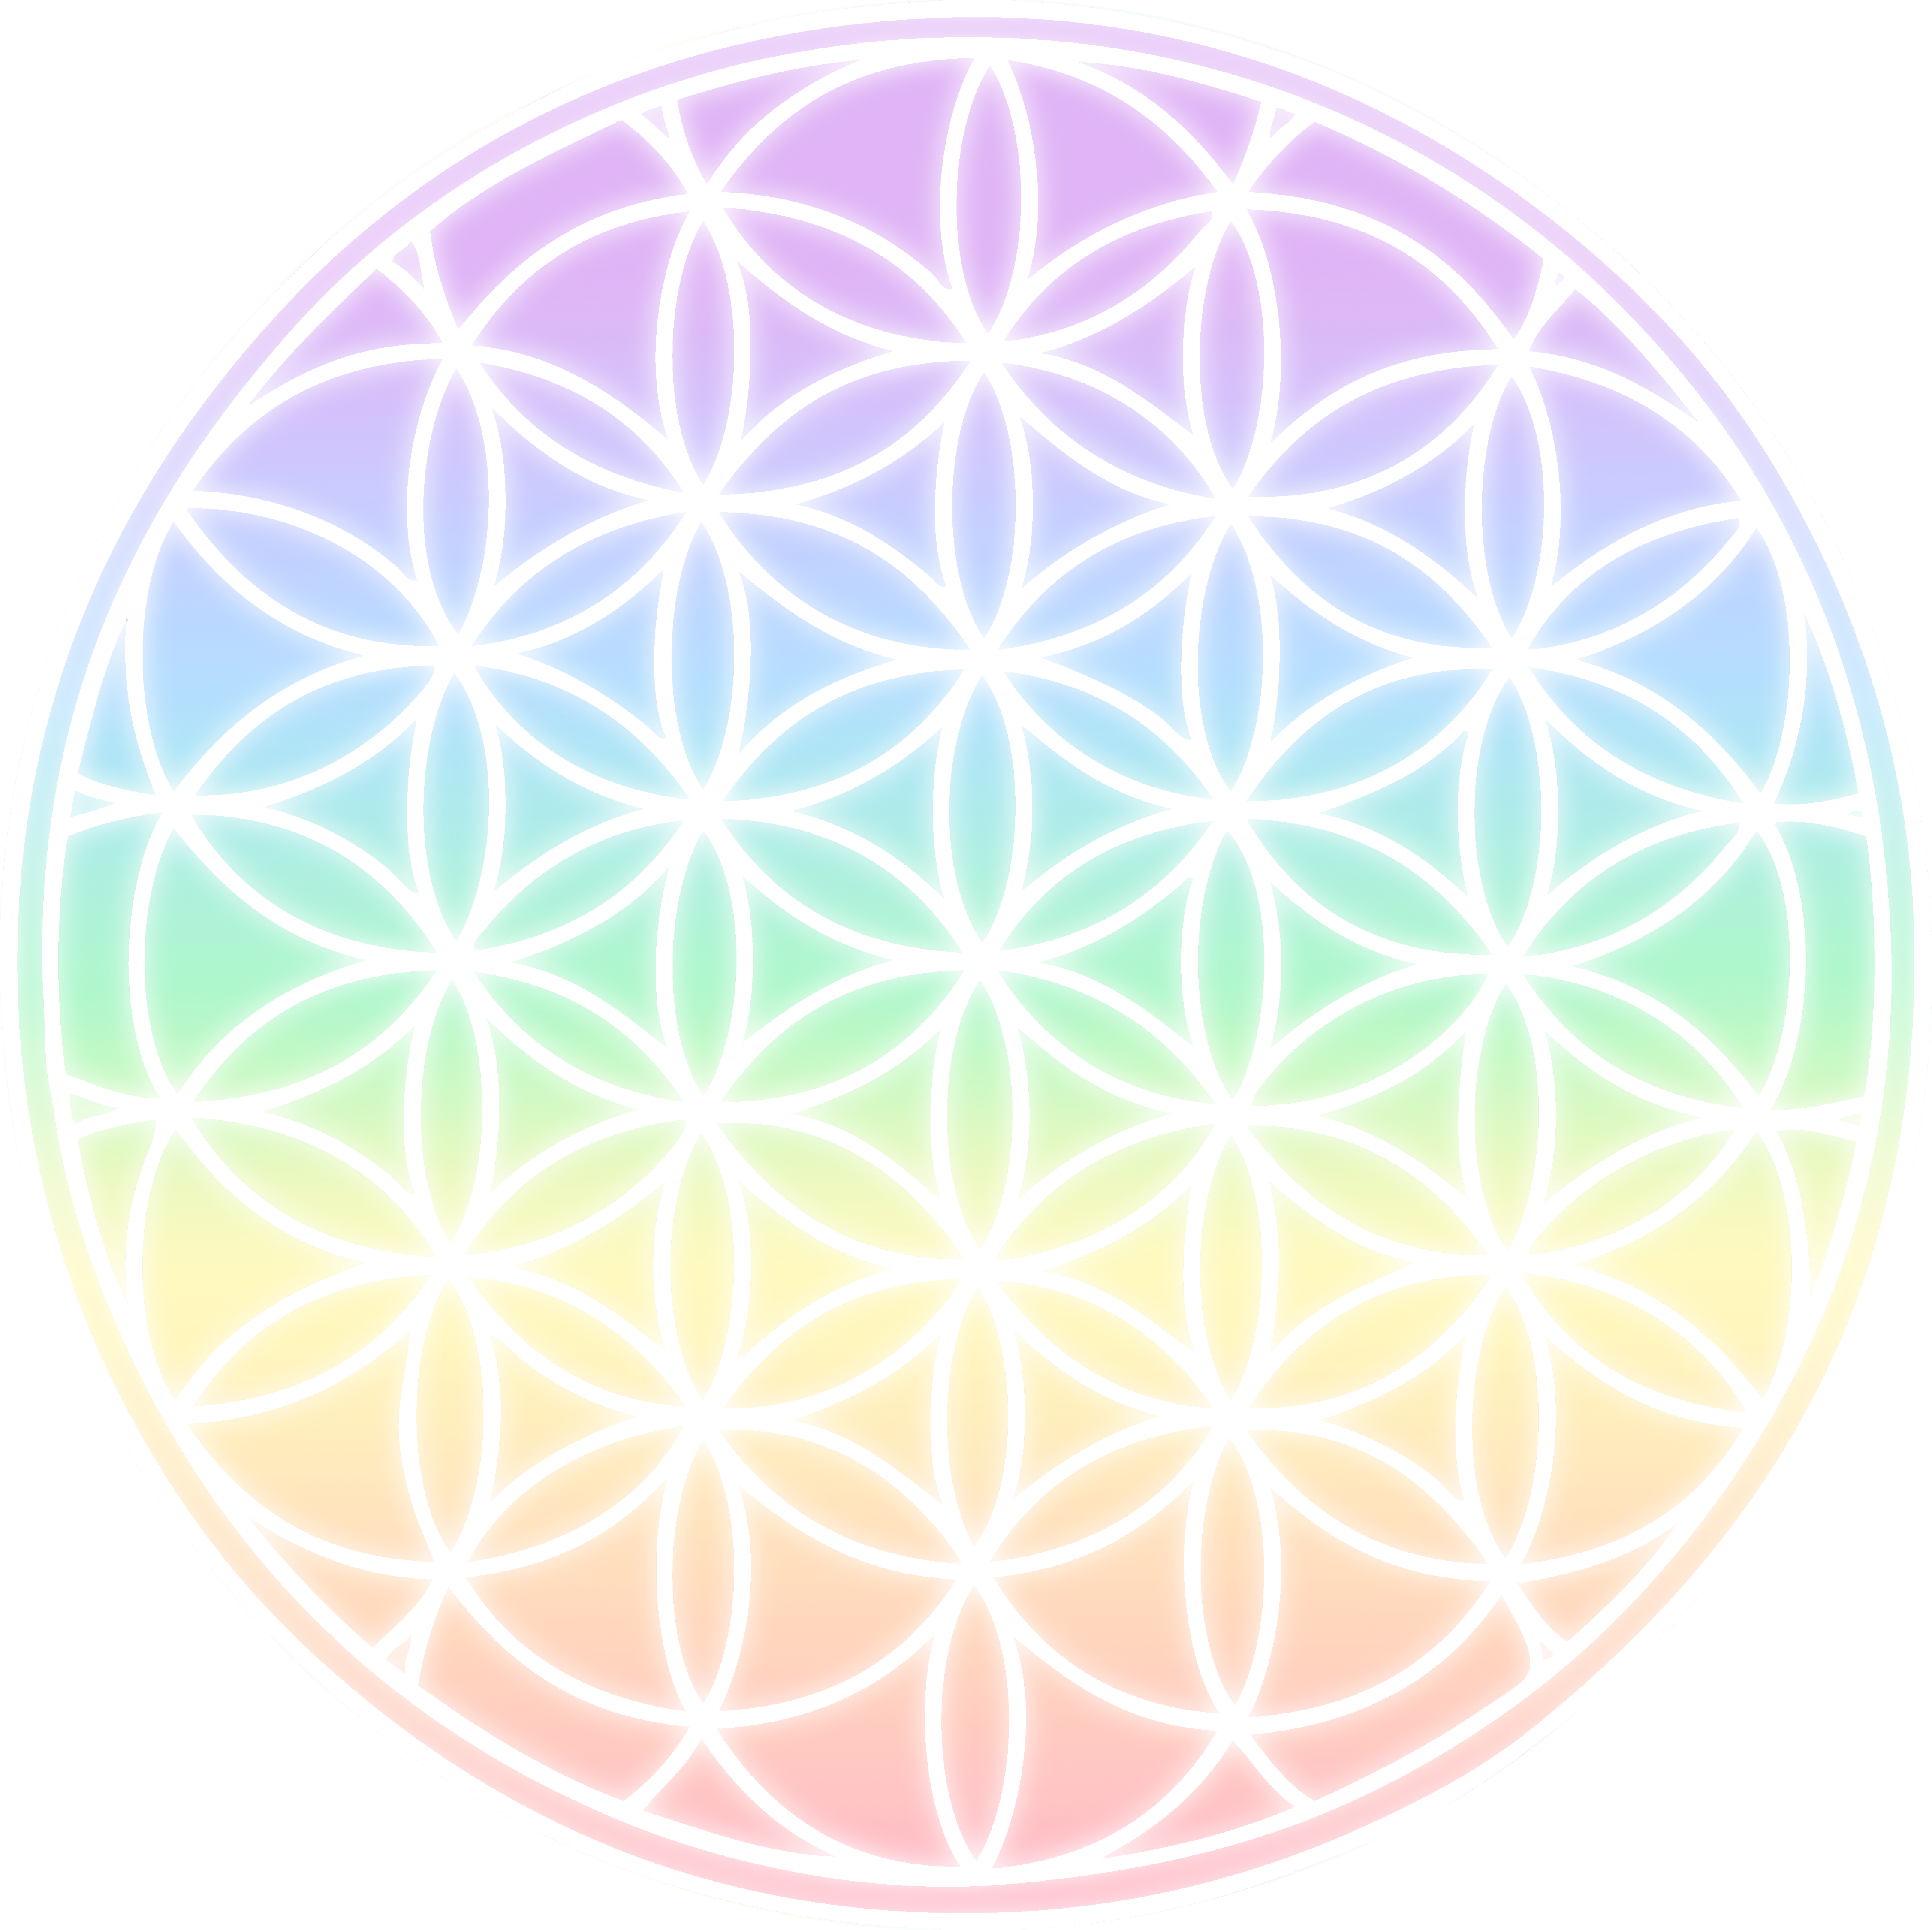 Flower of life clipart graphic free Rainbow Flower of Life Symbol - Free Clip Art graphic free